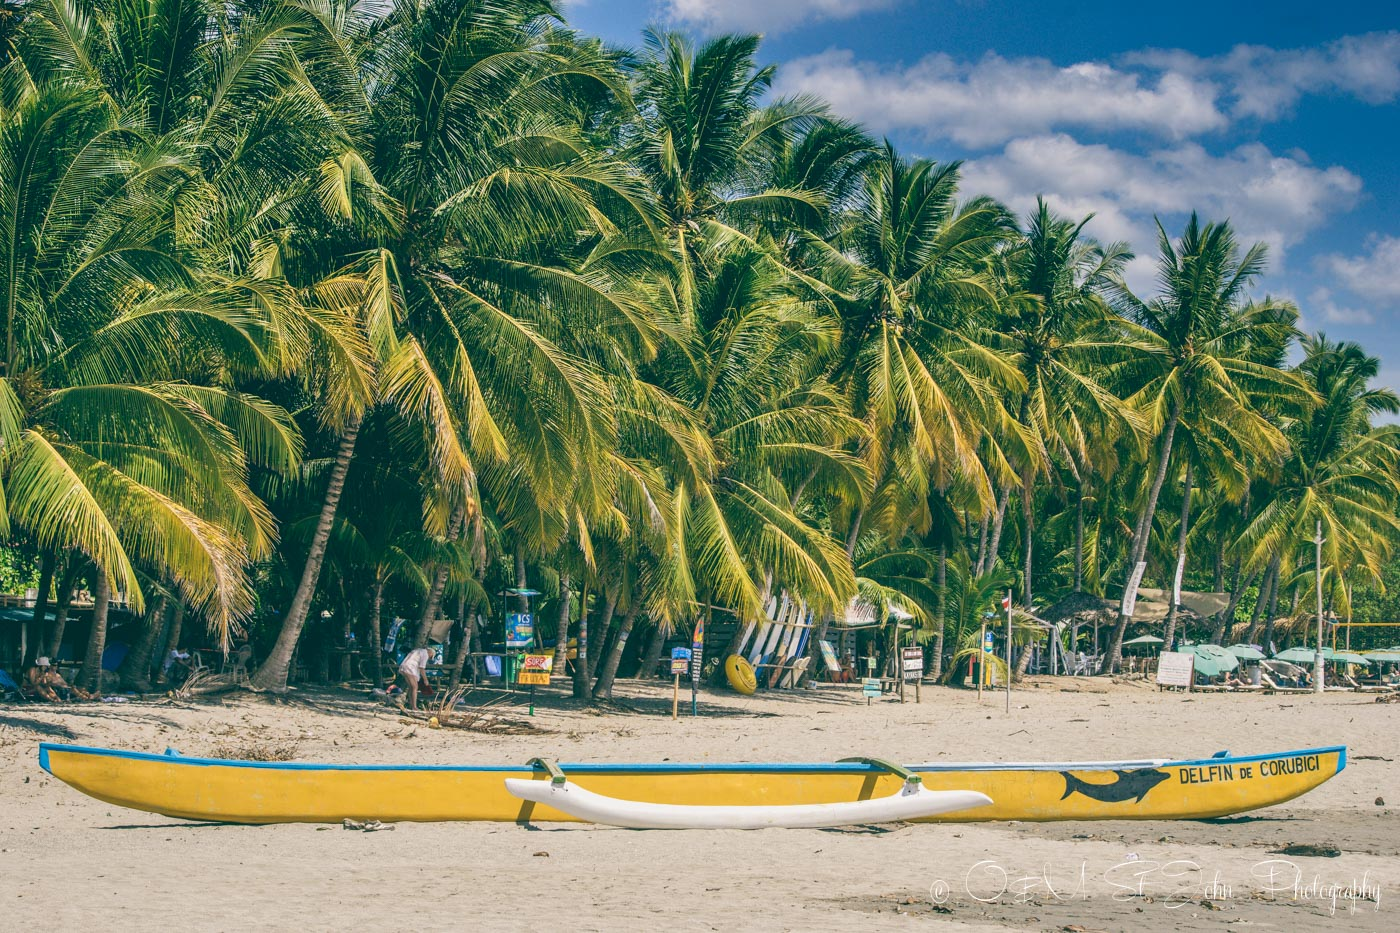 Smara a beach town in costa rica thats hard not to love smara a beach town in costa rica thats hard not to love drink tea travel kristyandbryce Gallery